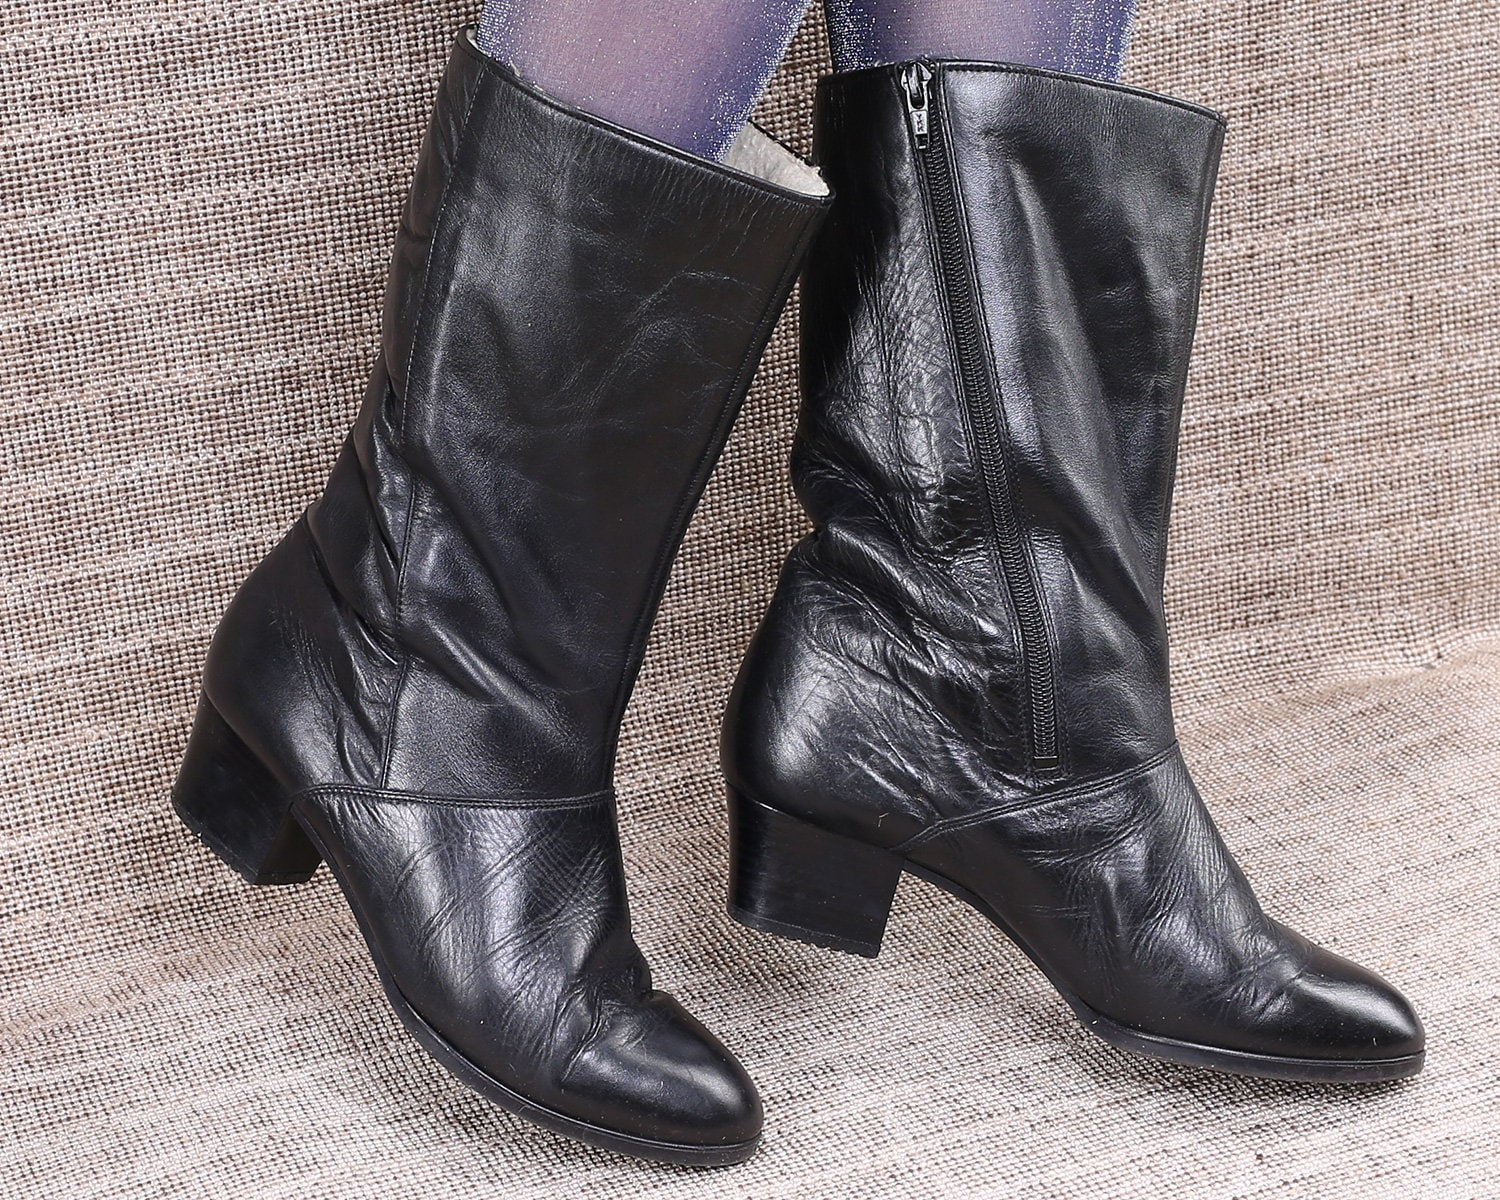 f81653a5b0c4 US size 8 Slouch Cone Heel Boots 80s Black Leather Insulated